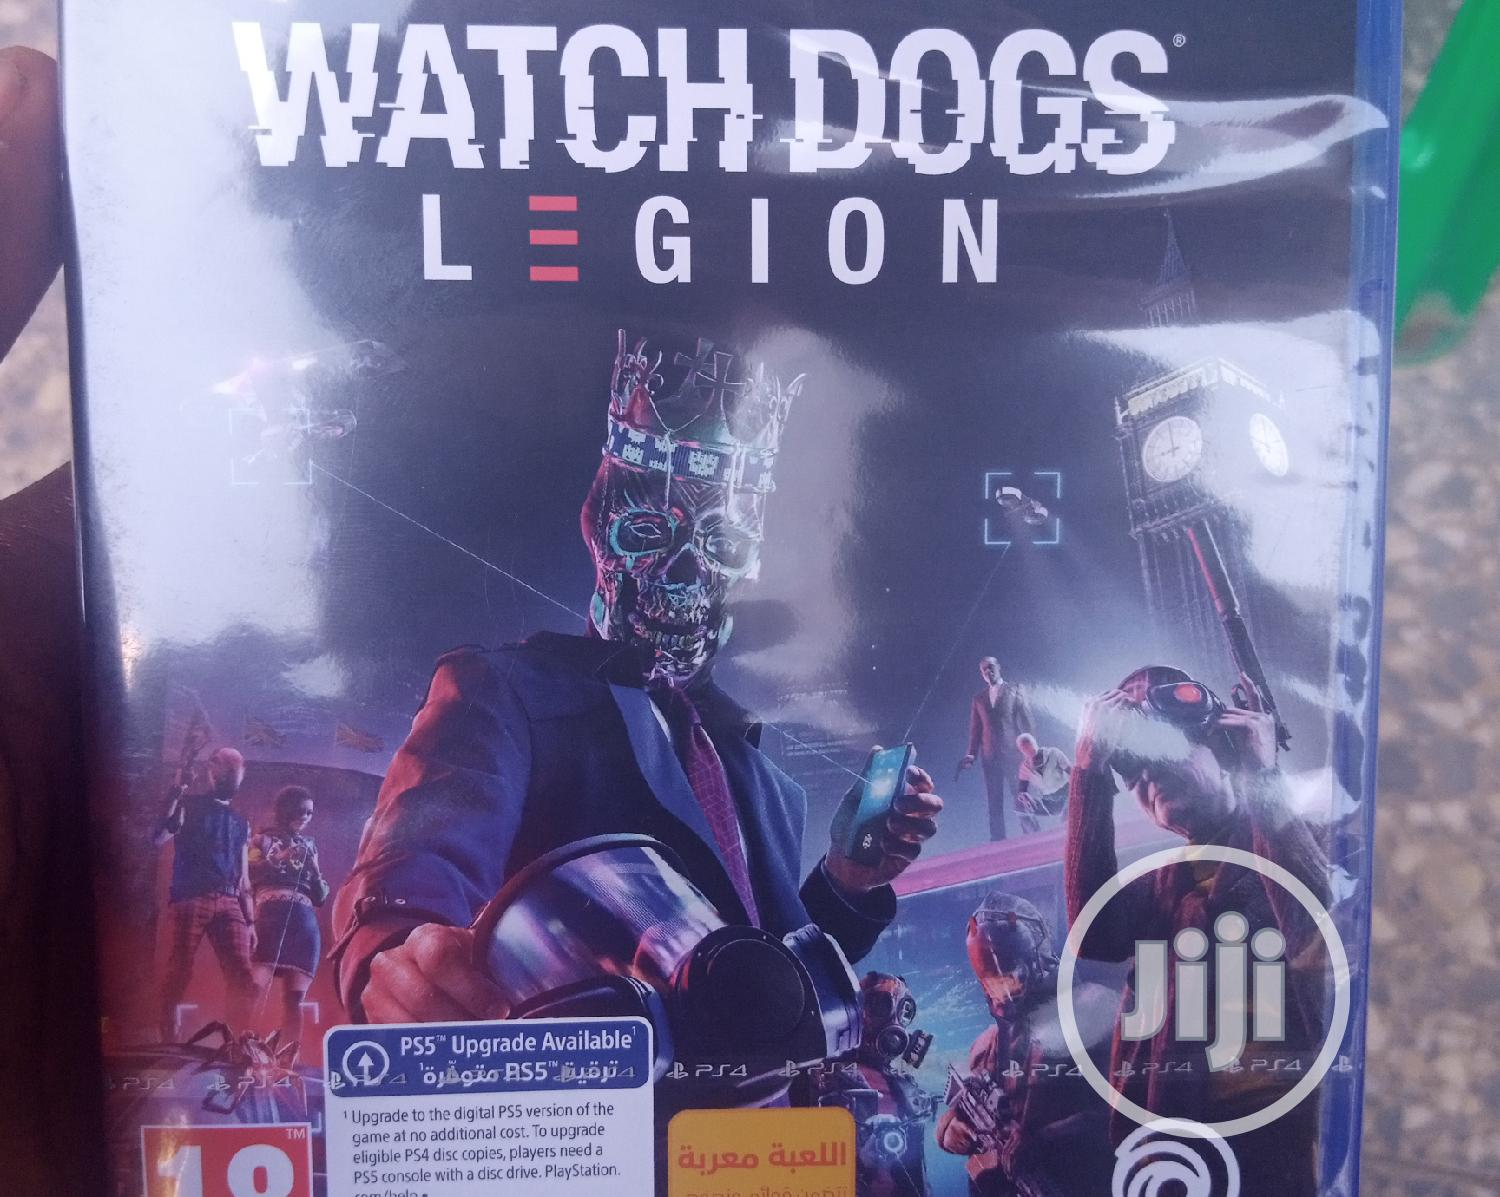 Watch Dogs Legion For Playstation 4 In Wuse 2 Video Games Somto Godwin Jiji Ng